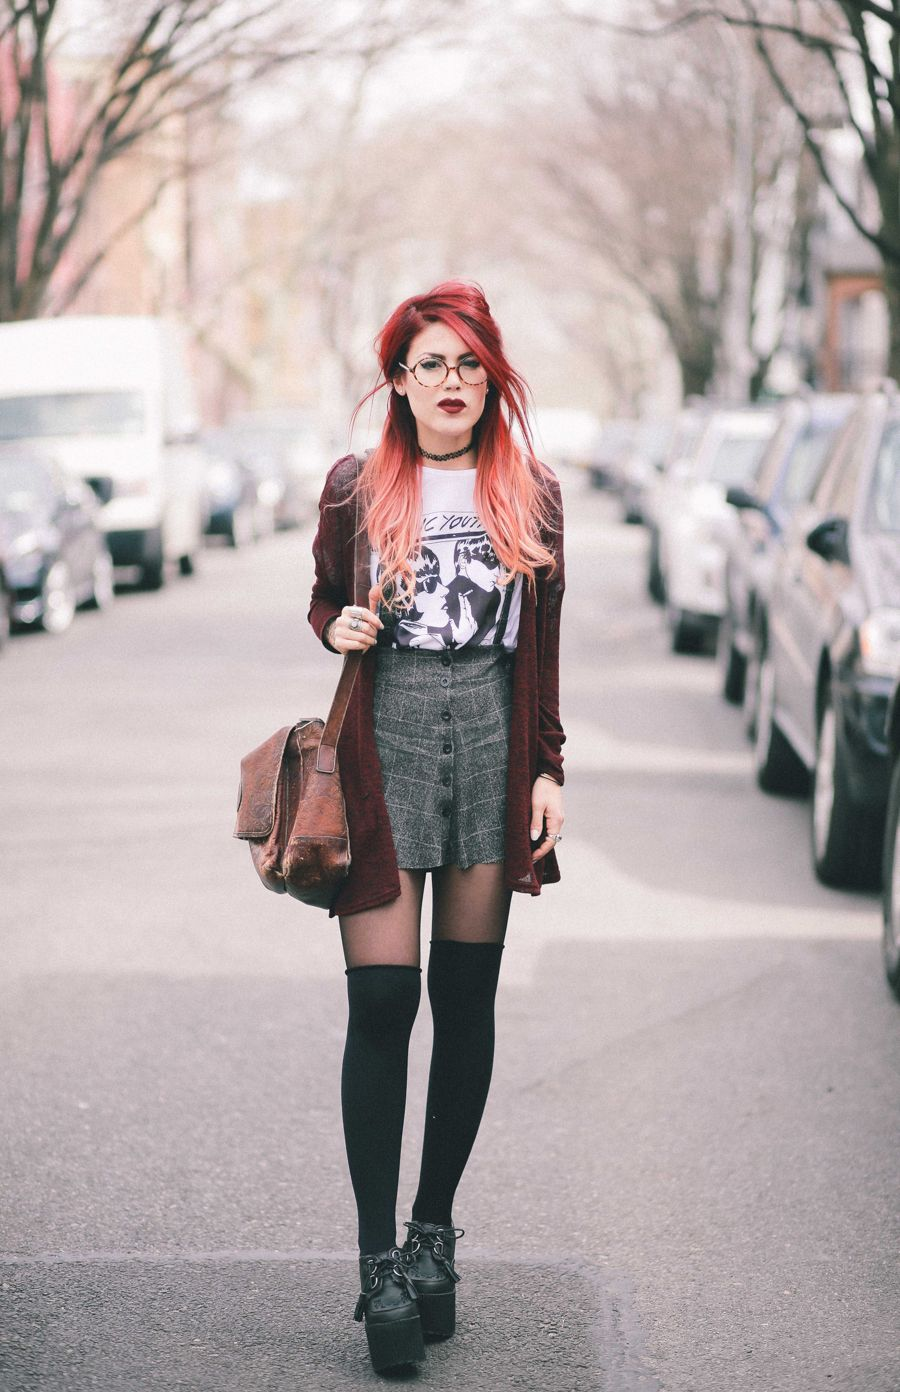 Le Happy wearing Sonic Youth tee and grey plaid skirt